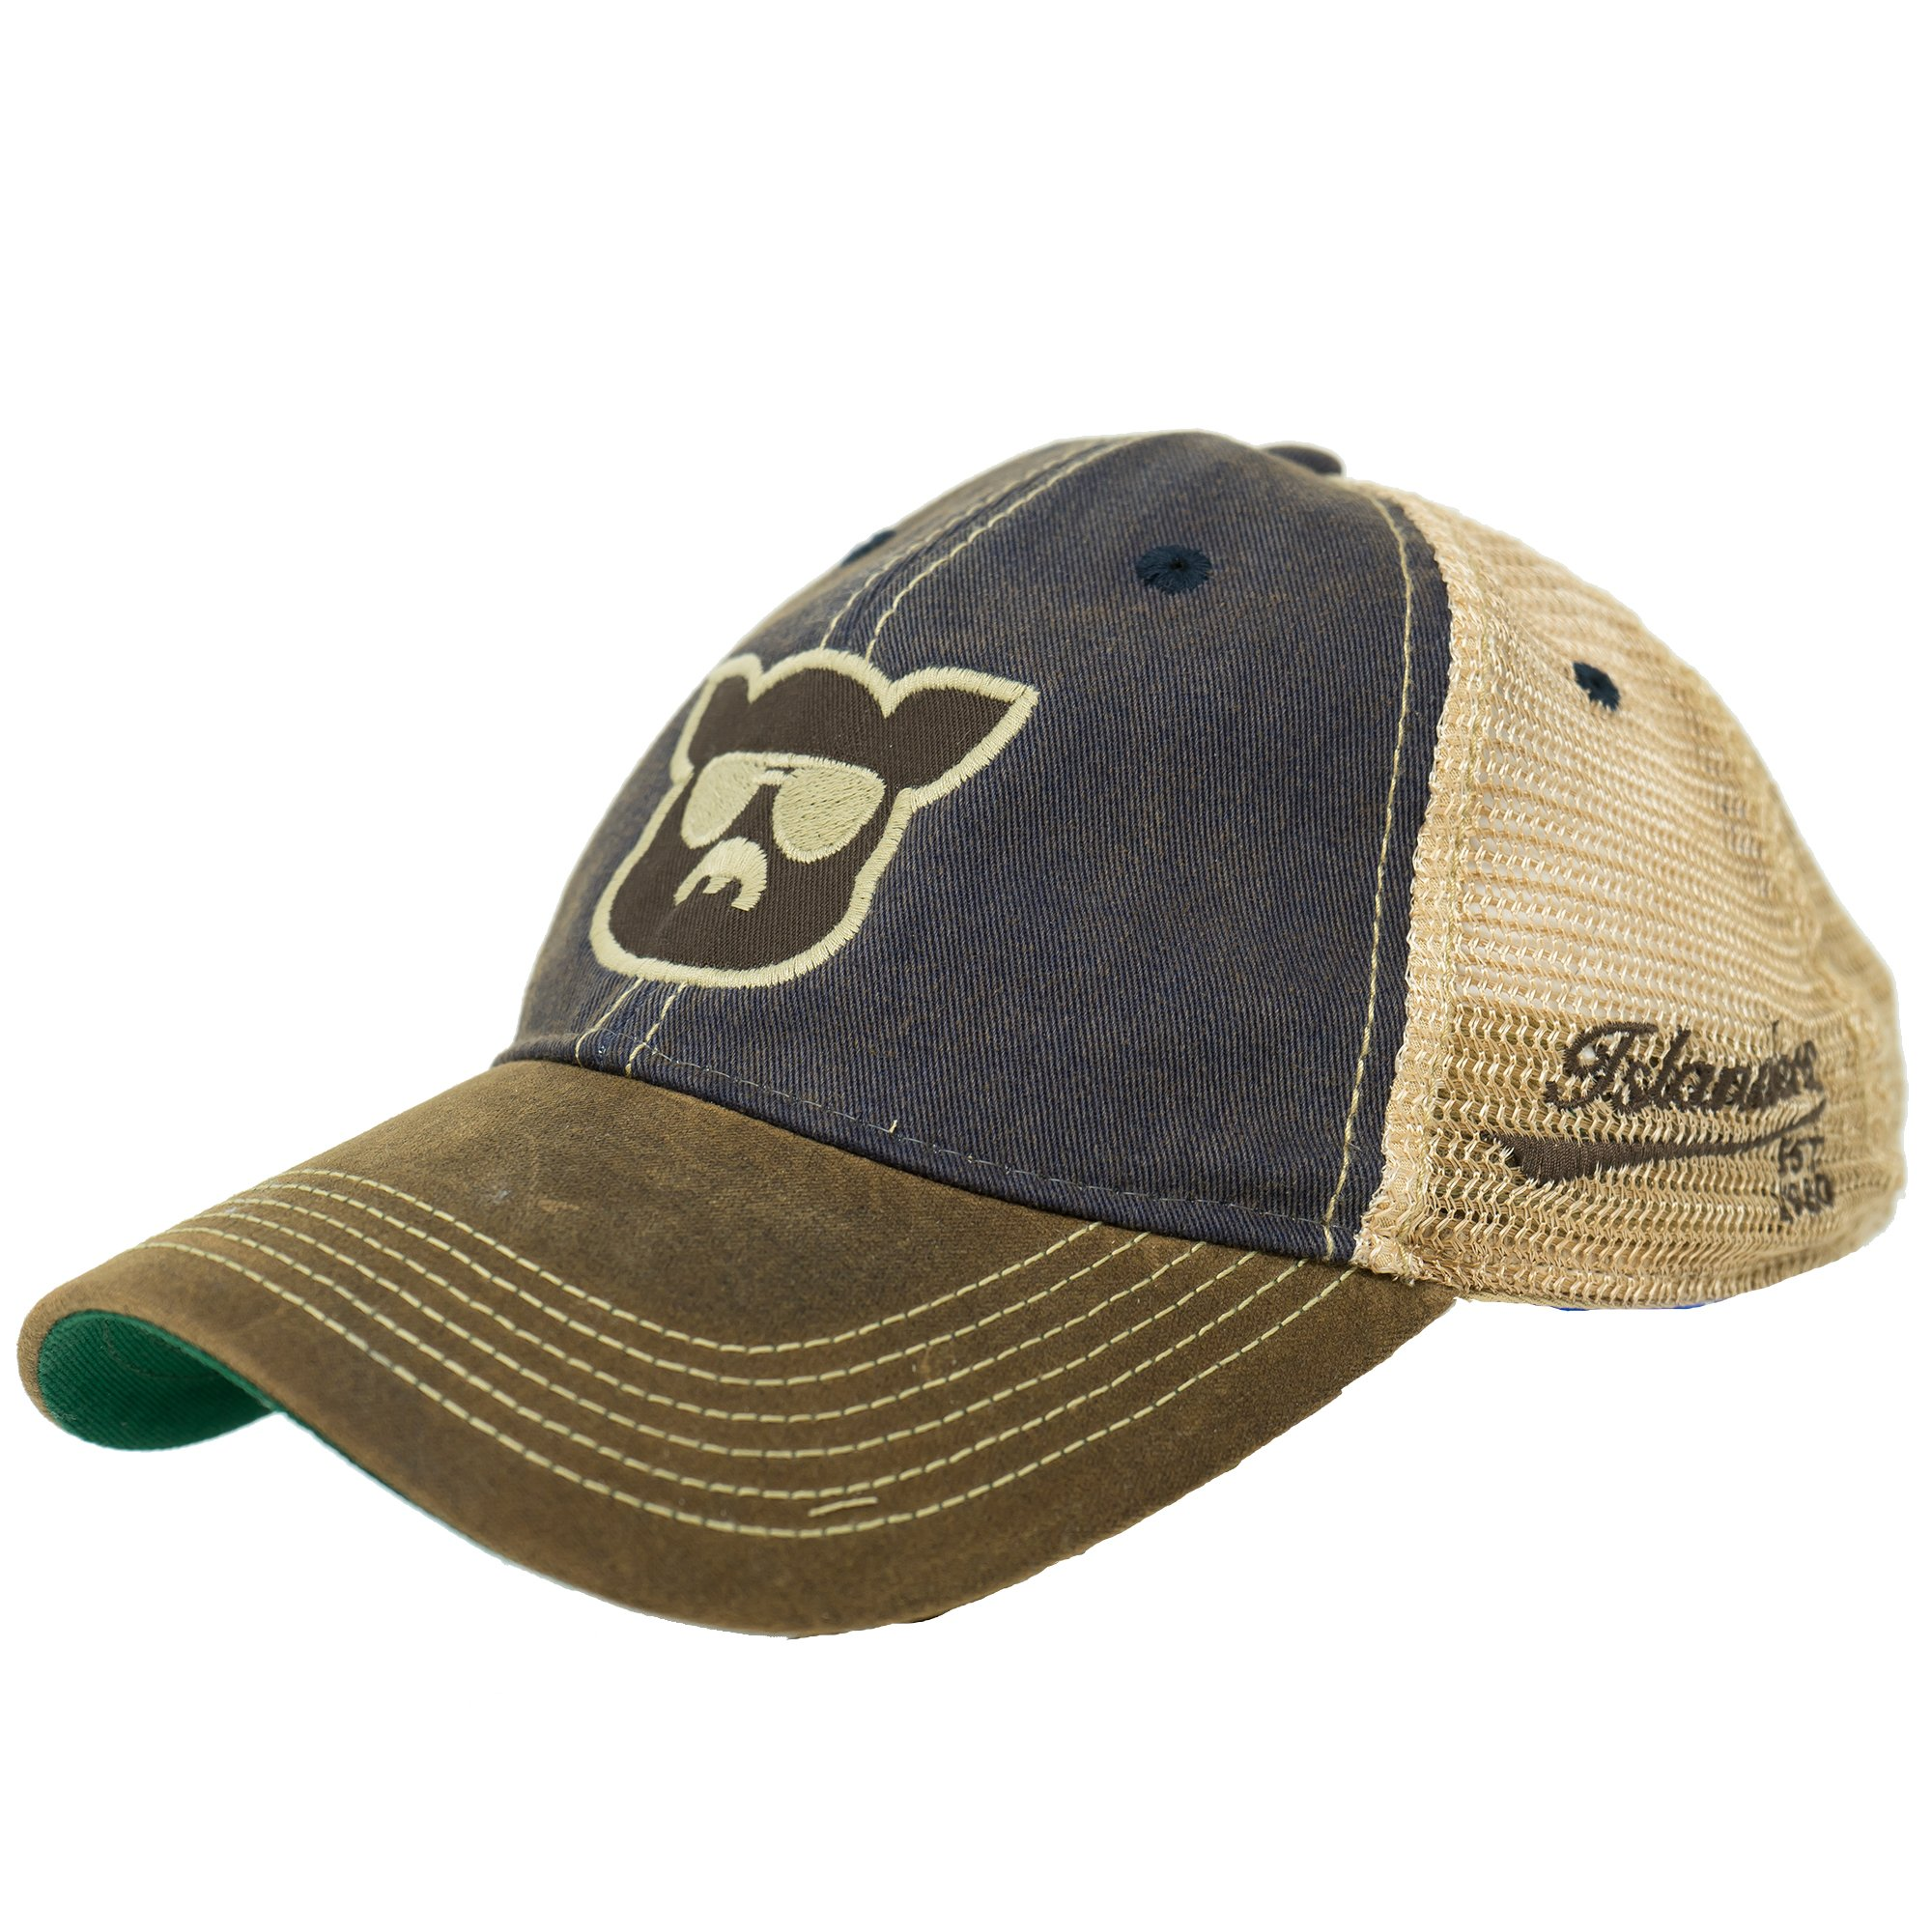 382e8a68 Galleon - Islanders Pig Face Trucker Mesh Snapback Vintage Feel Hat,  Navy/Brown Waxed, One Size